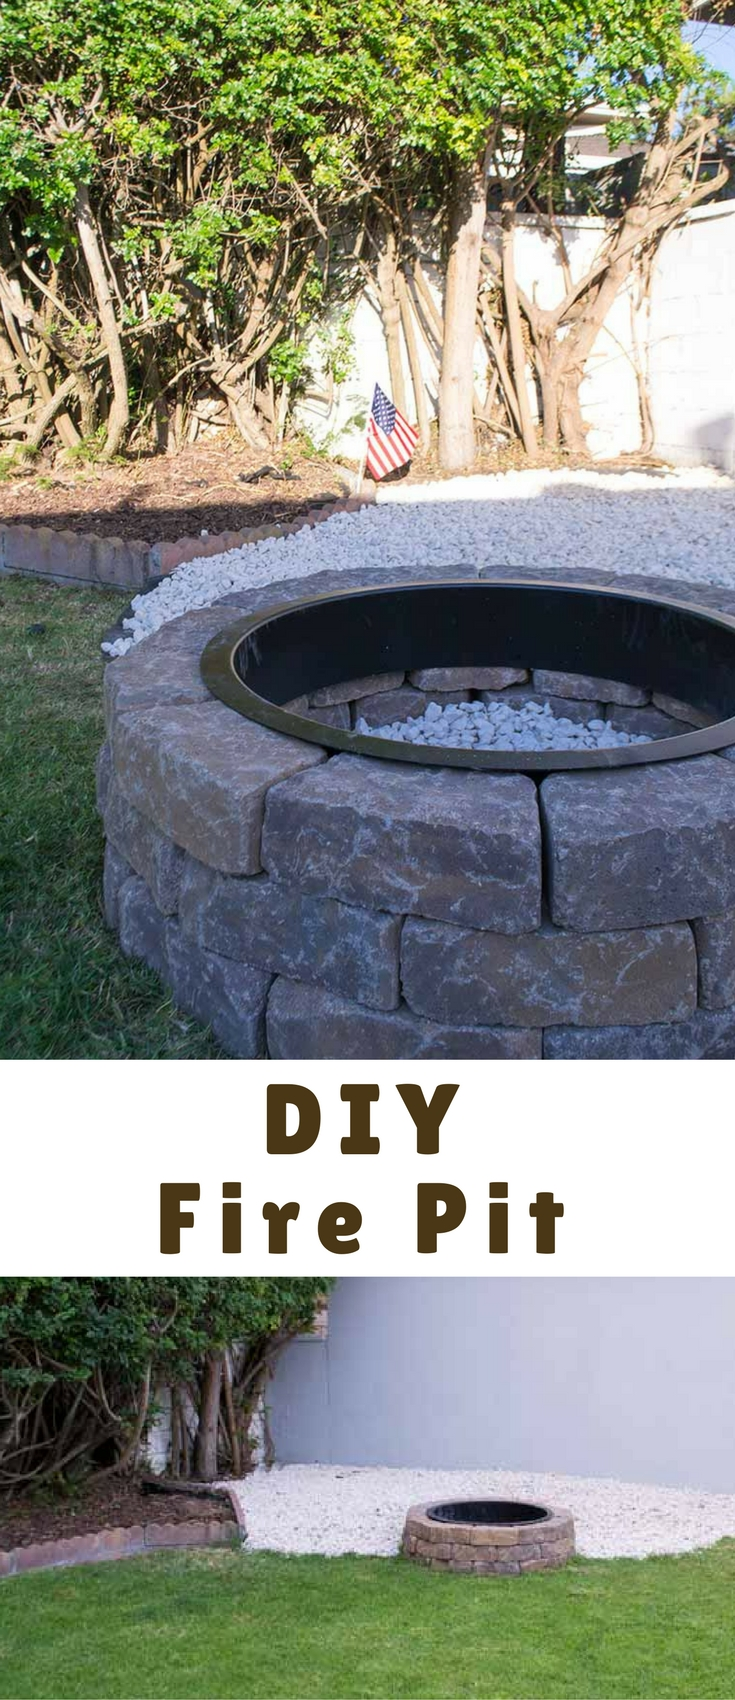 Our DIY Fire Pit for instant backyard appeal was a weekend project that only took a day. It is perfect for summer gatherings and making s'mores with kids!